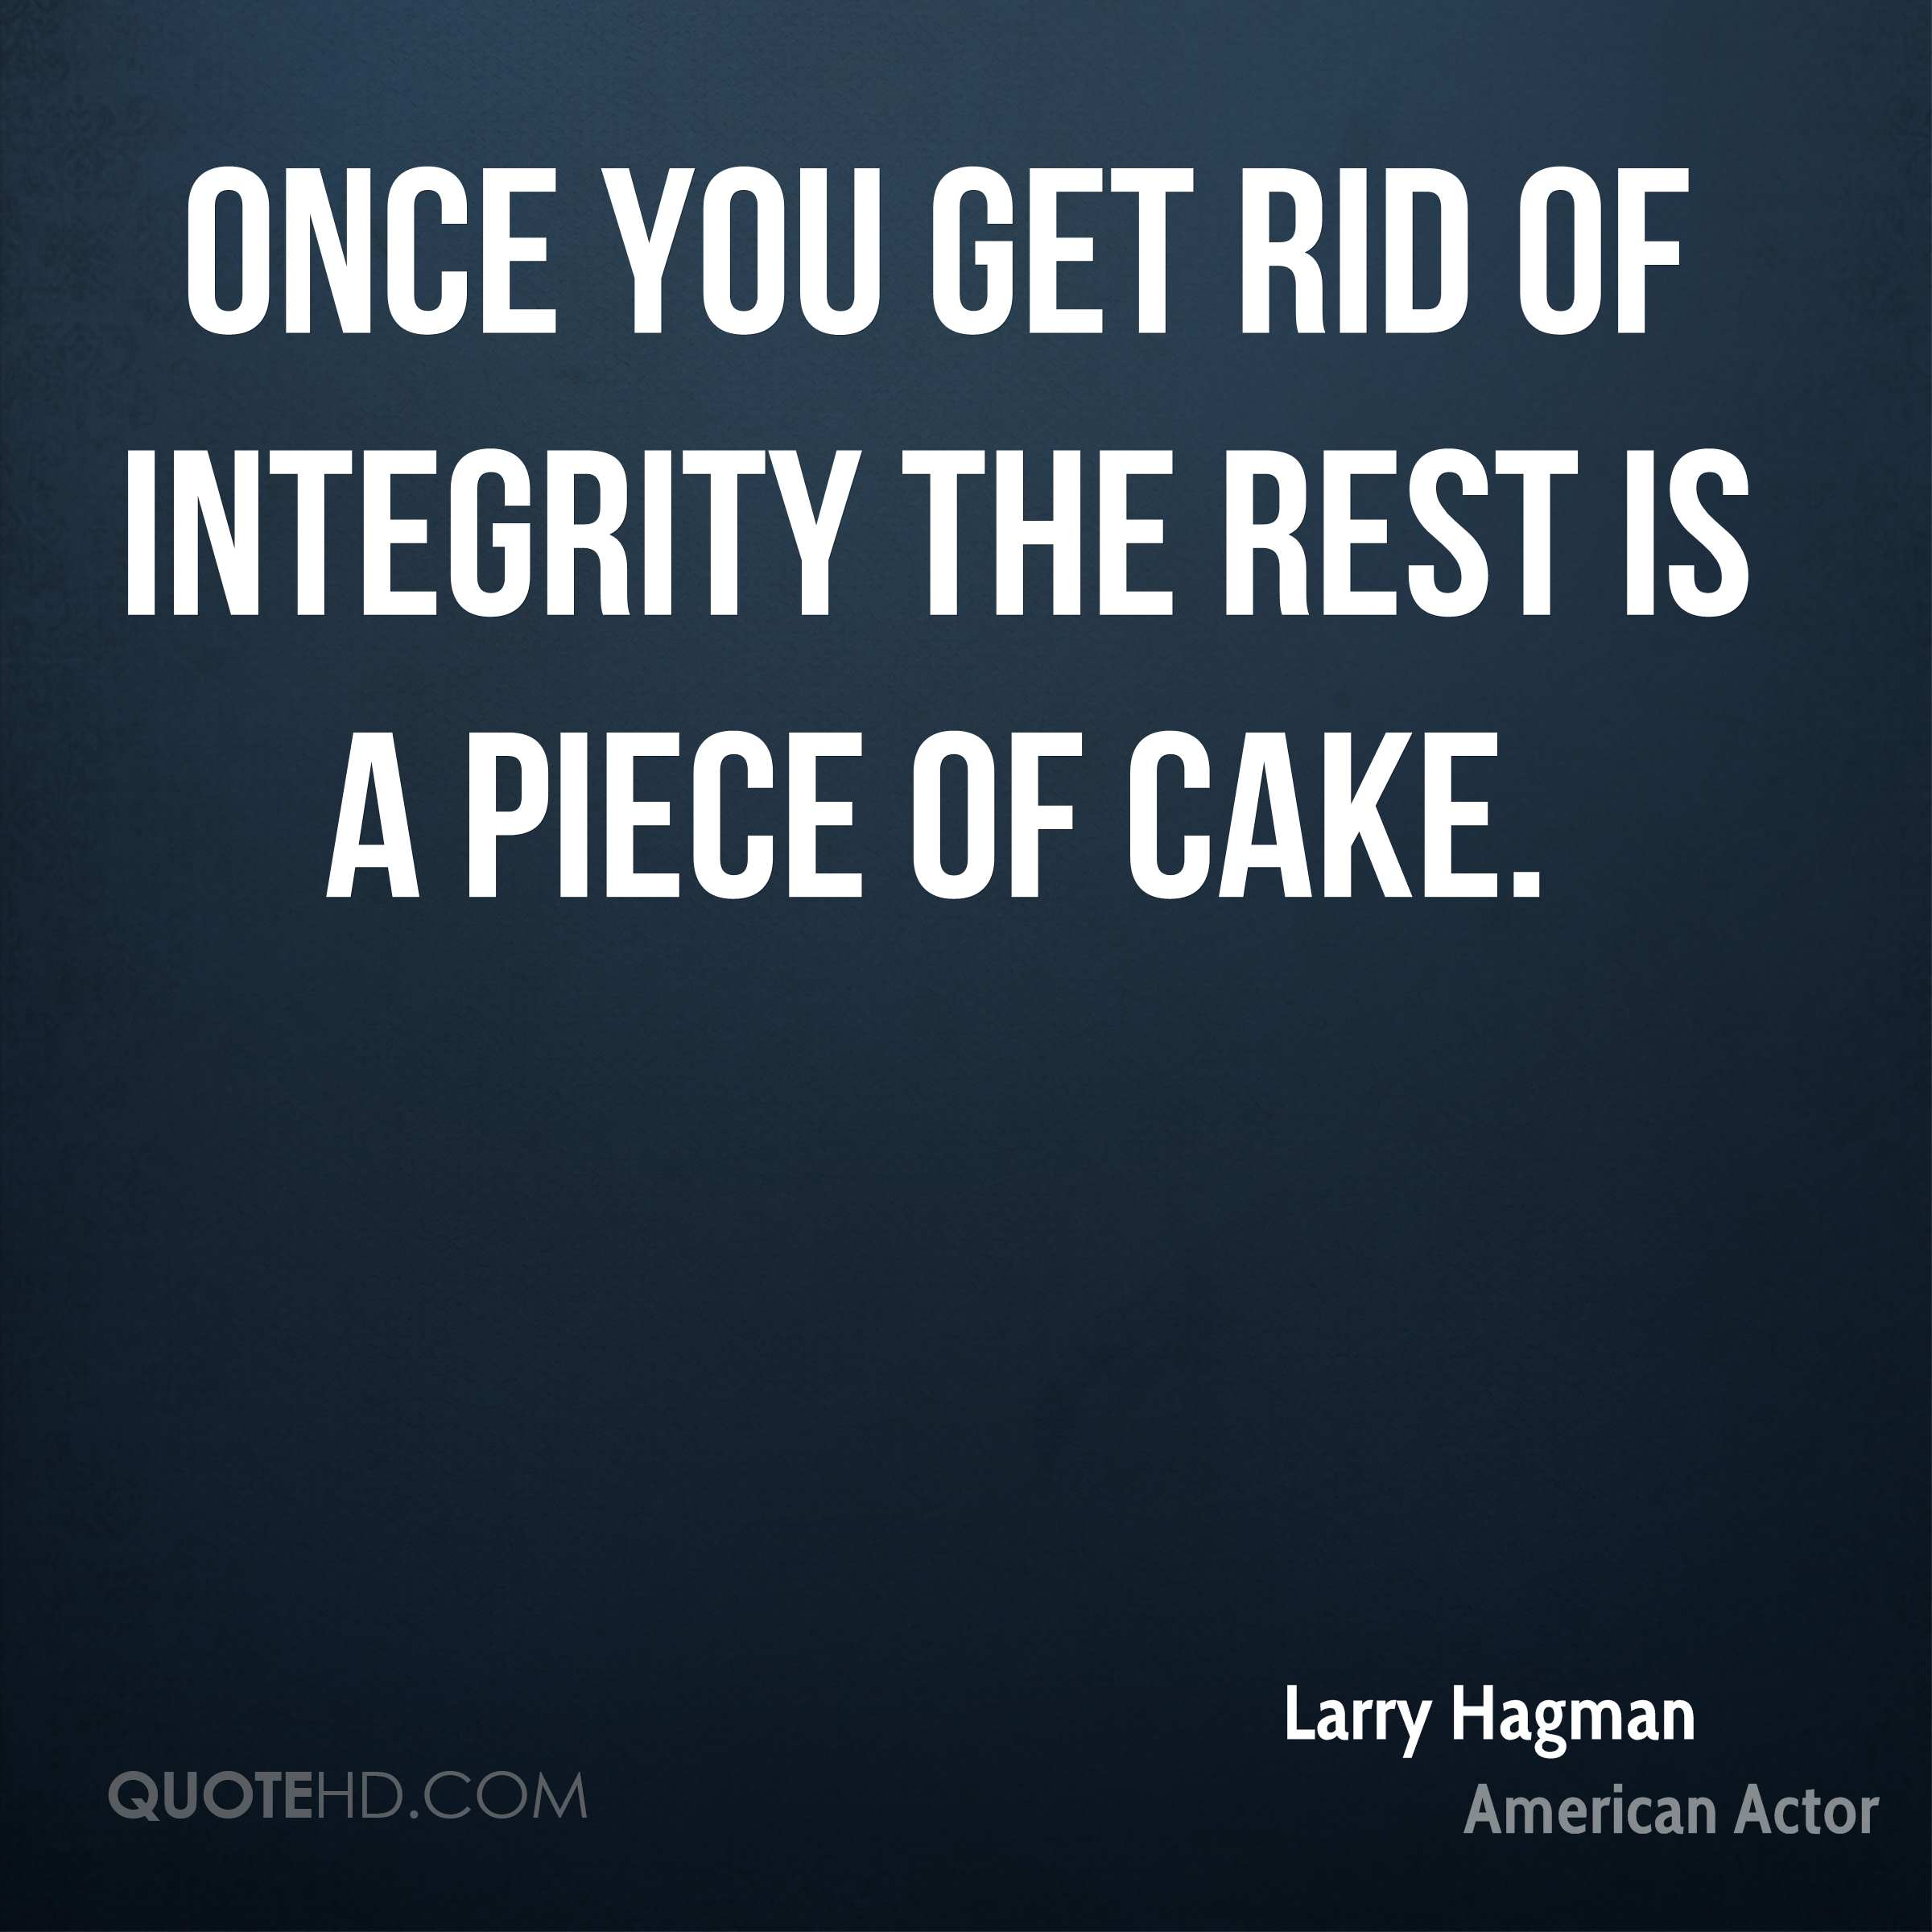 Once you get rid of integrity the rest is a piece of cake.